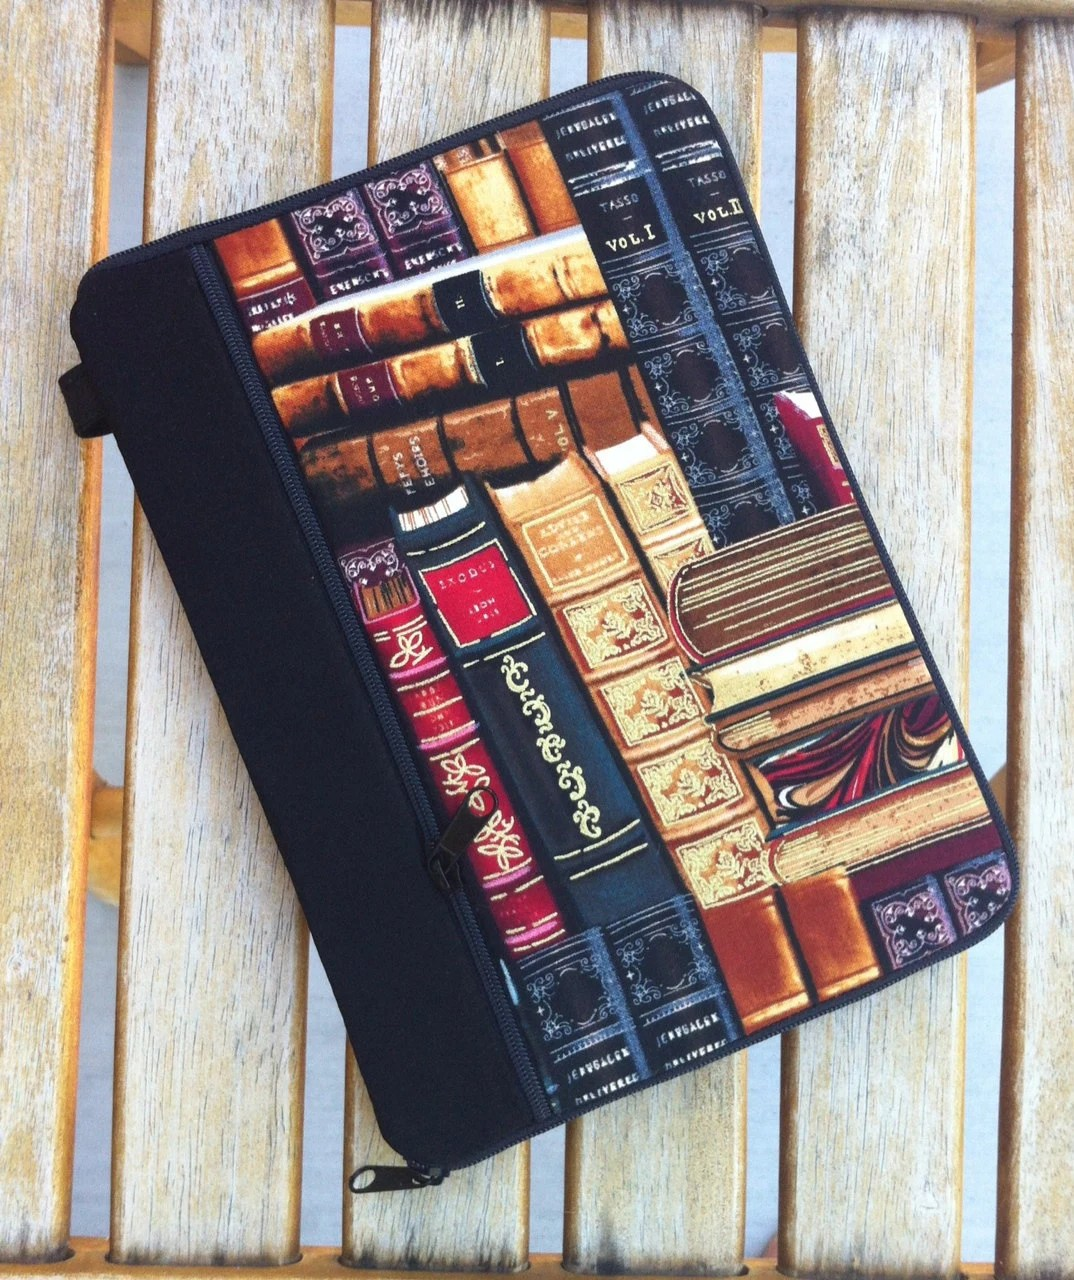 PERSONALIZED ipad mini case/ kindle case/ nook cases/ others - full zipper close HARD CASE - books